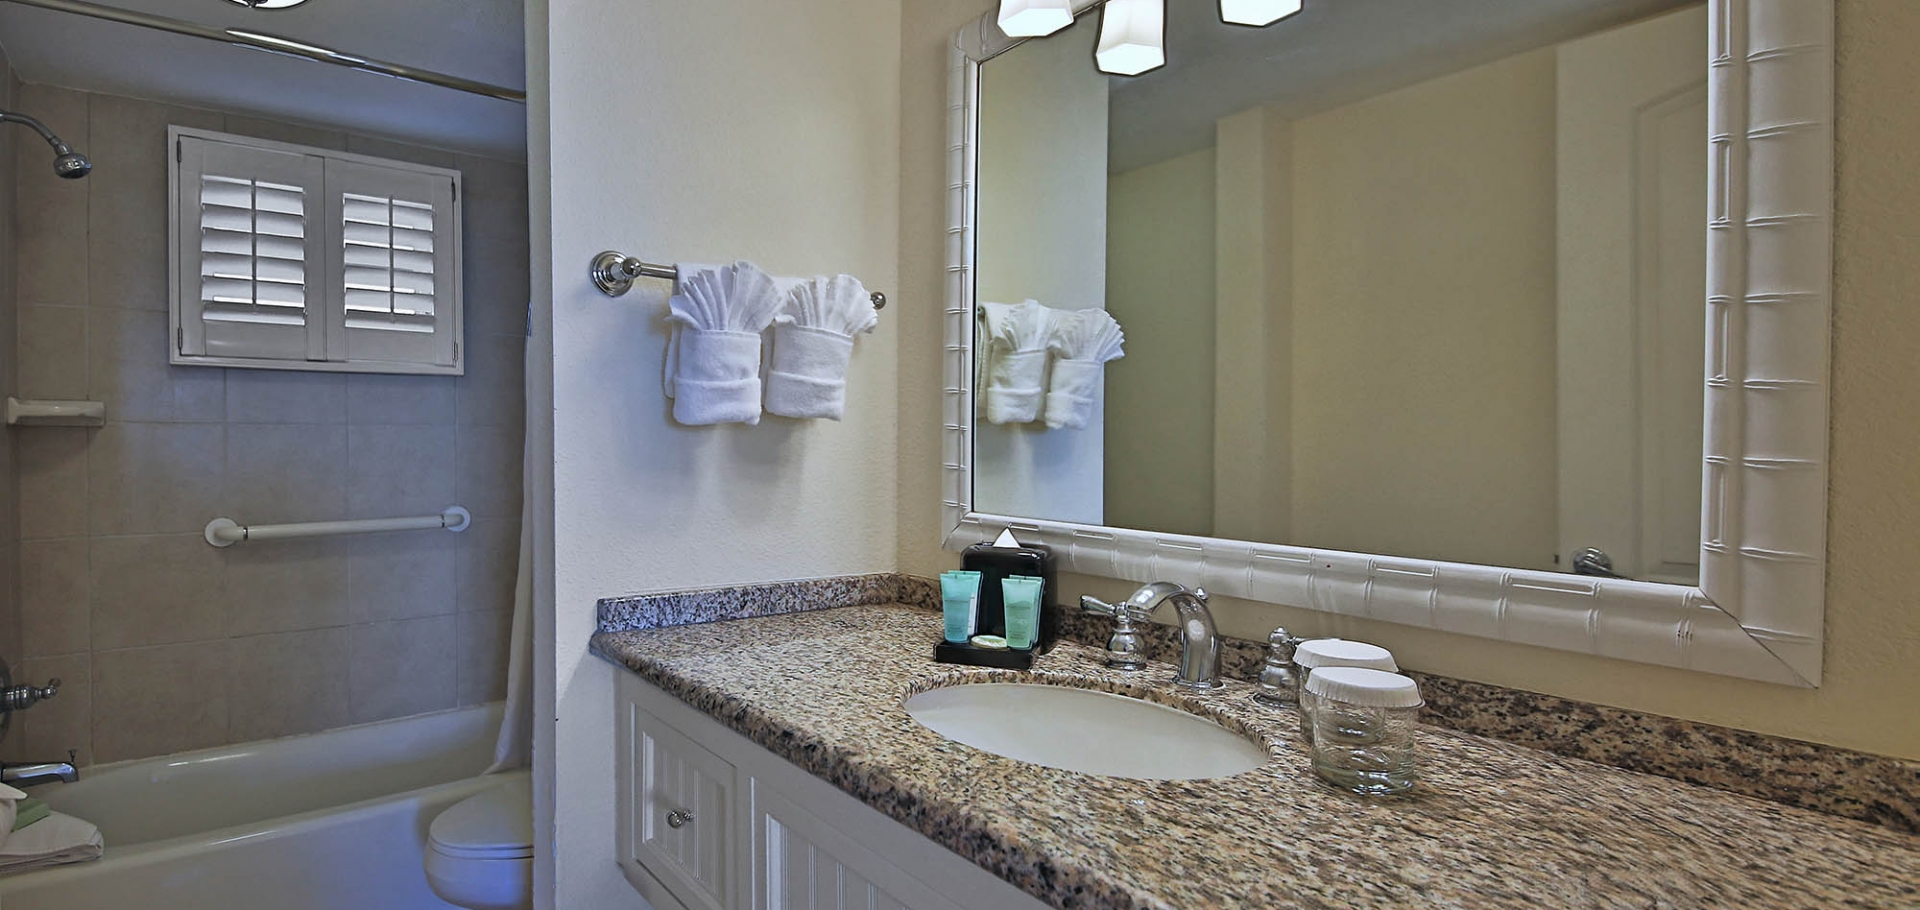 Sanibel Inn bathroom sink and mirror